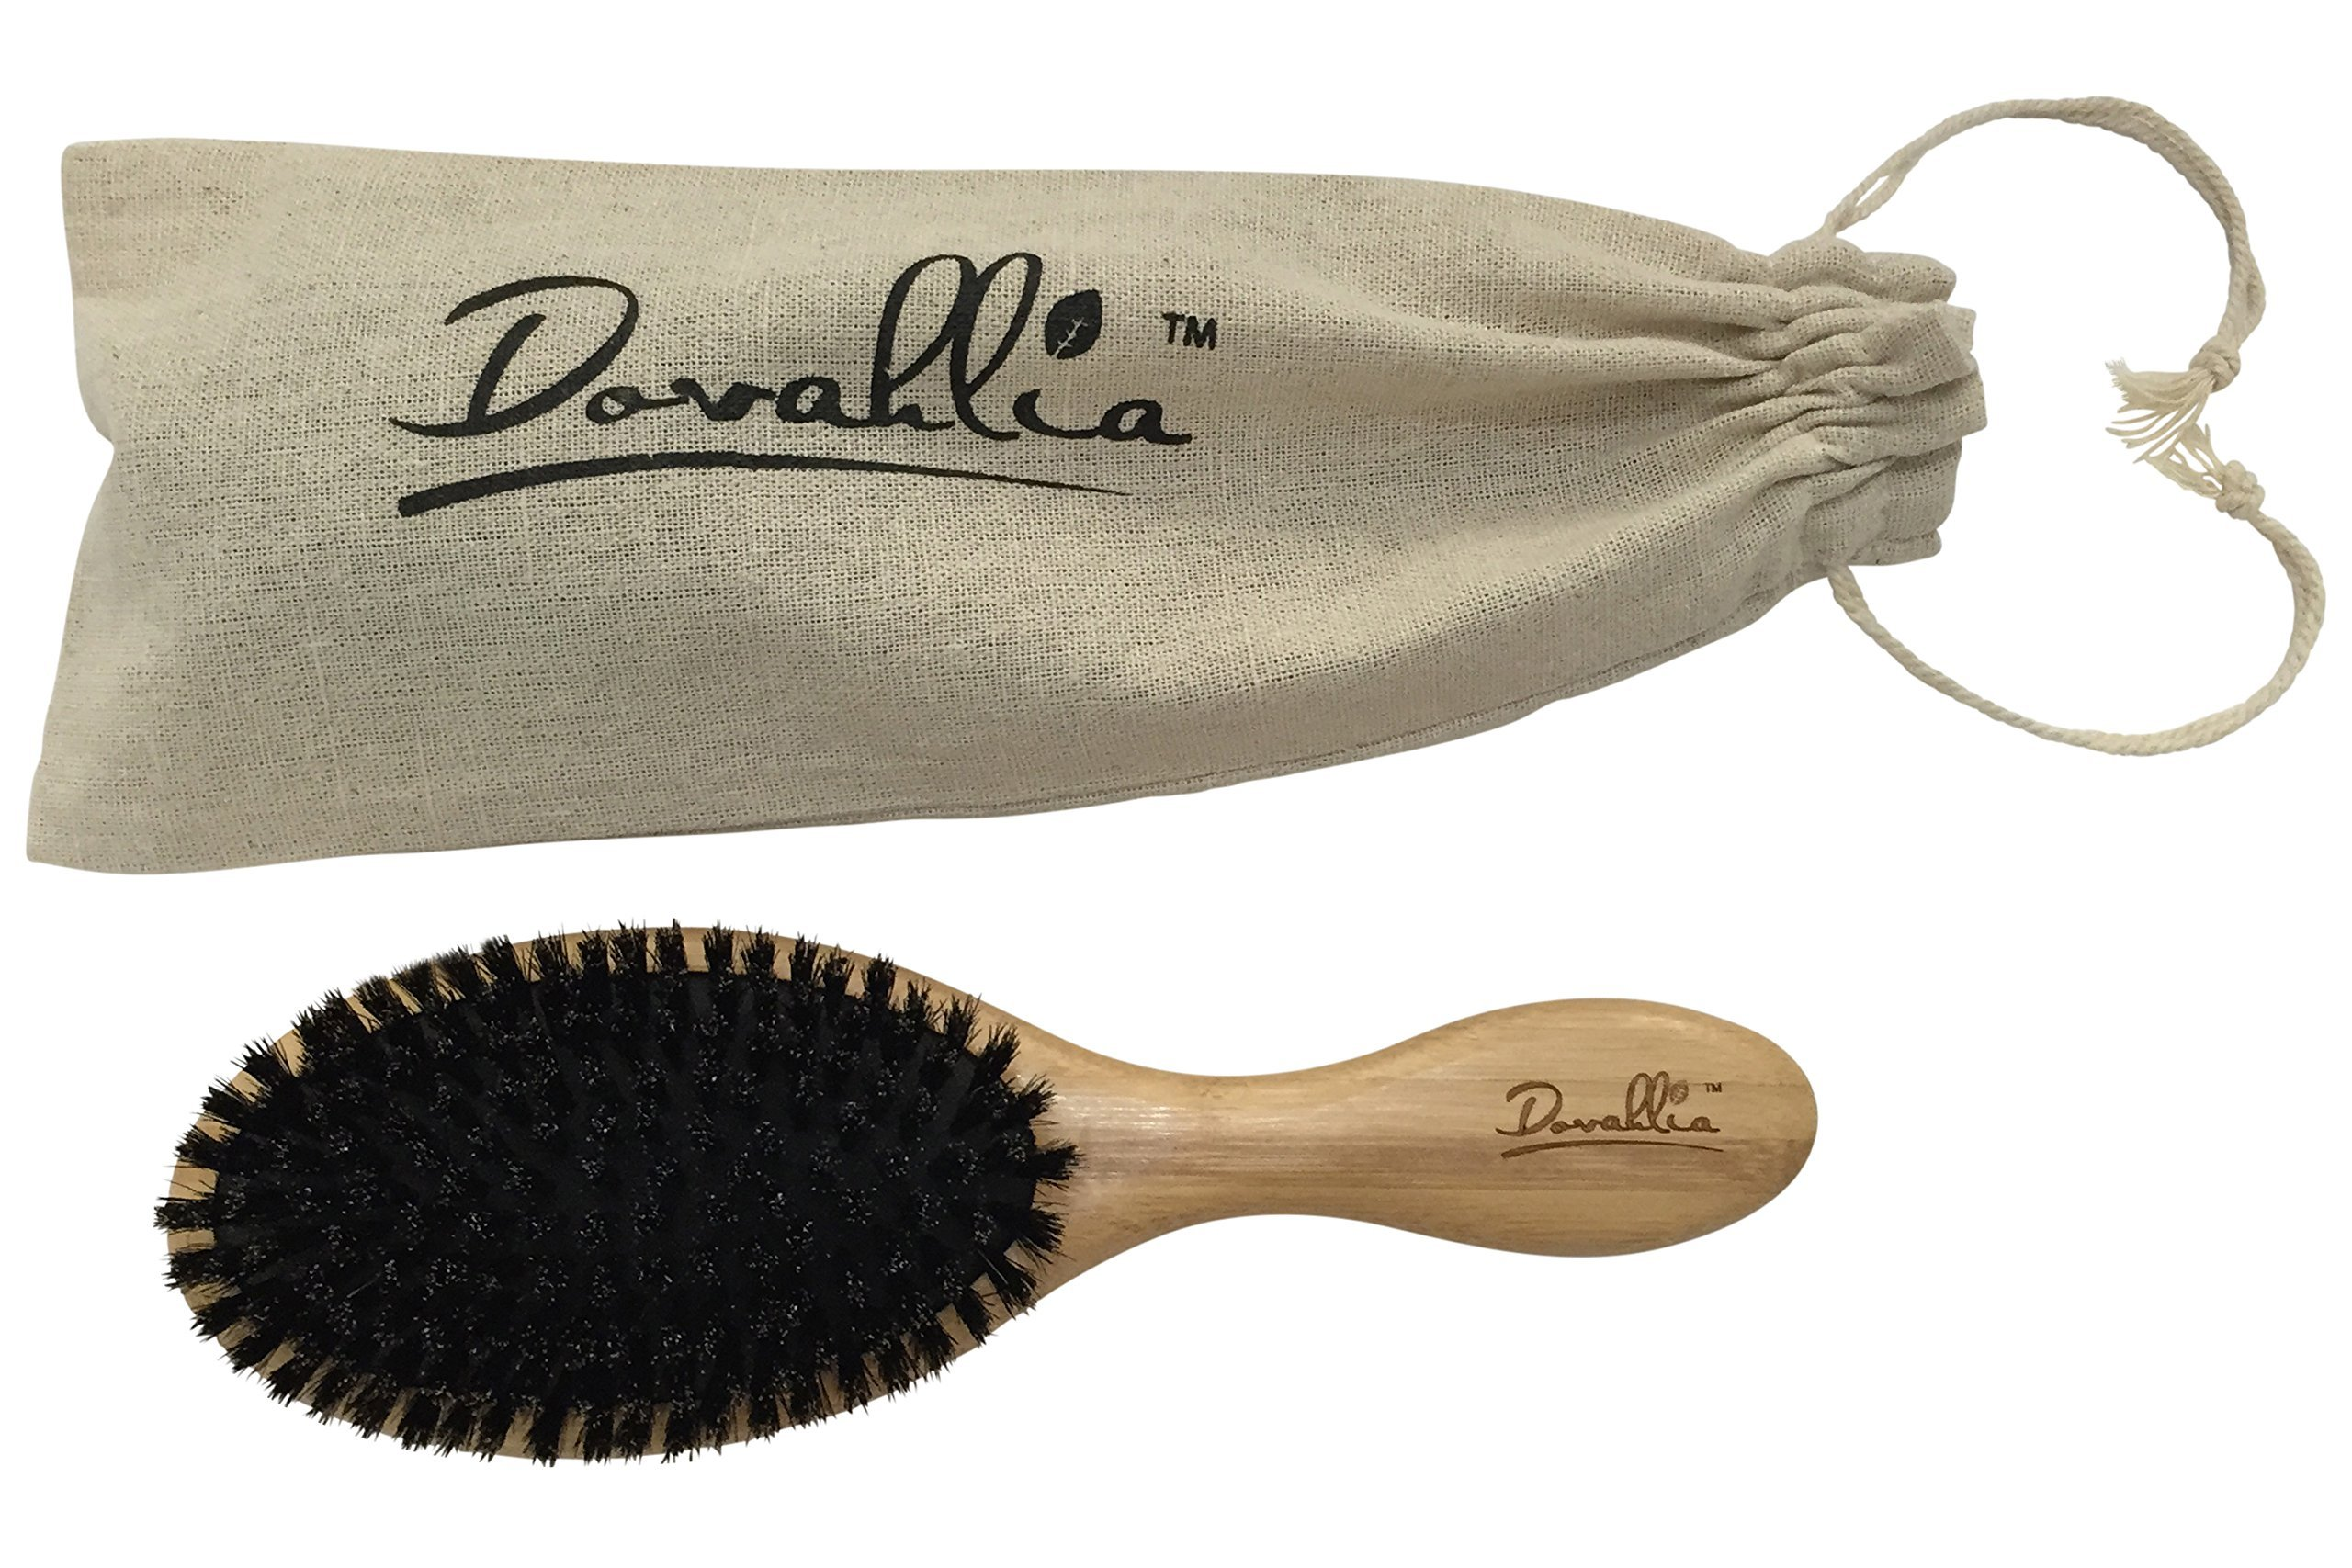 Boar Bristle Hair Brush Set for Women and Men - Designed for Thin and Normal Hair - Adds Shine and Improves Hair Texture - Wood Comb and Gift Bag Included (black) by Dovahlia (Image #7)